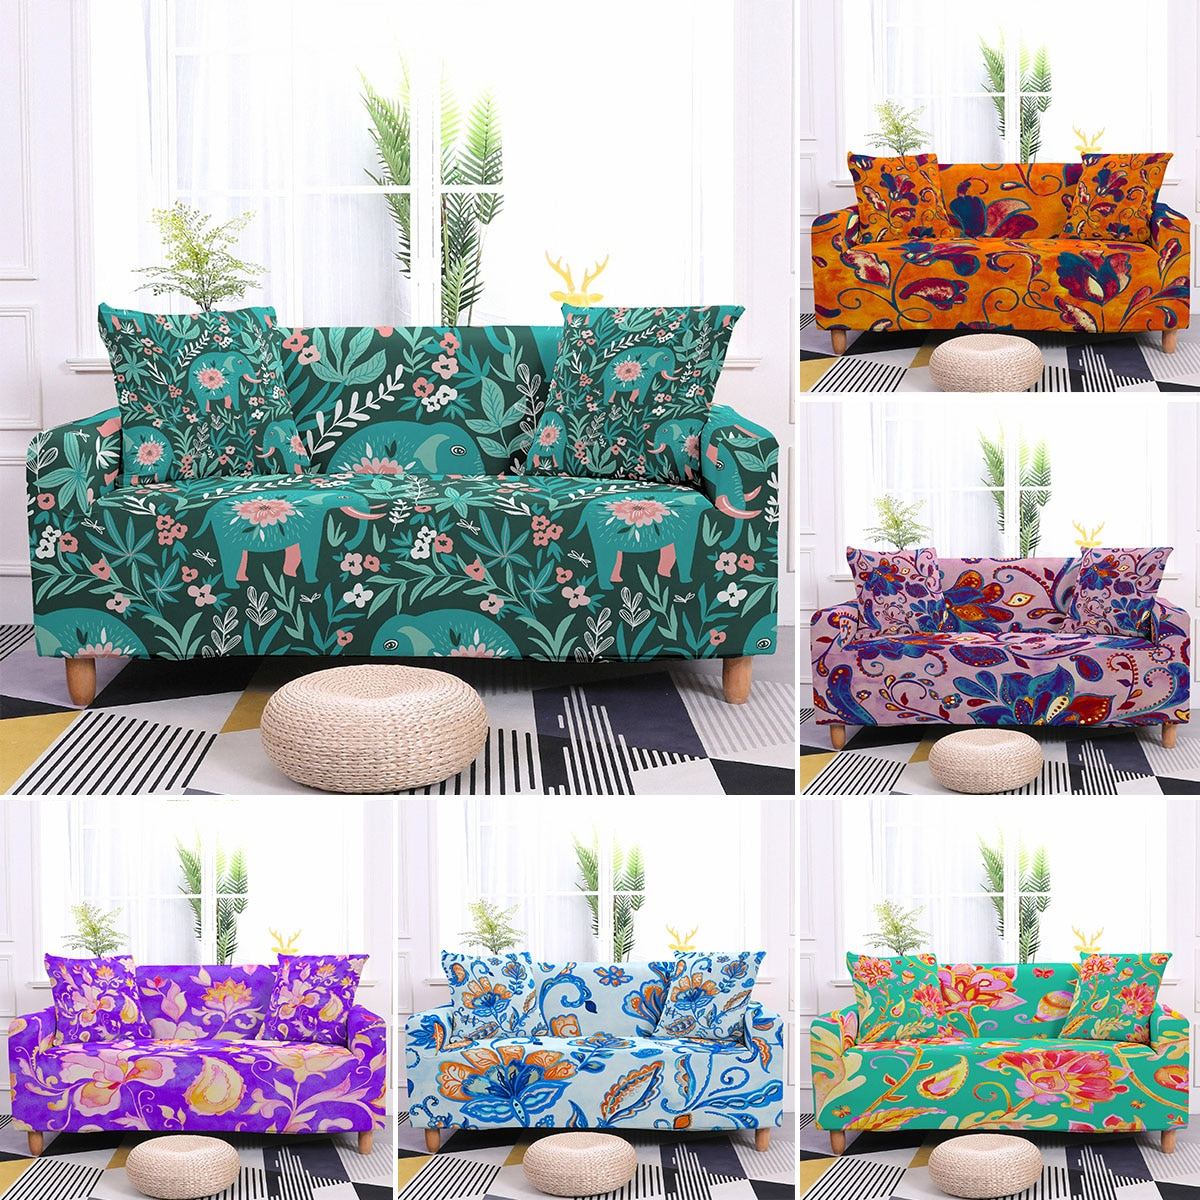 Elastic Sofa Slipcovers Modern Universal Sofa Cover For Living Room Stretch Spandex L-shape Couch Cover Home Decor 1/2/3/4-seat недорого